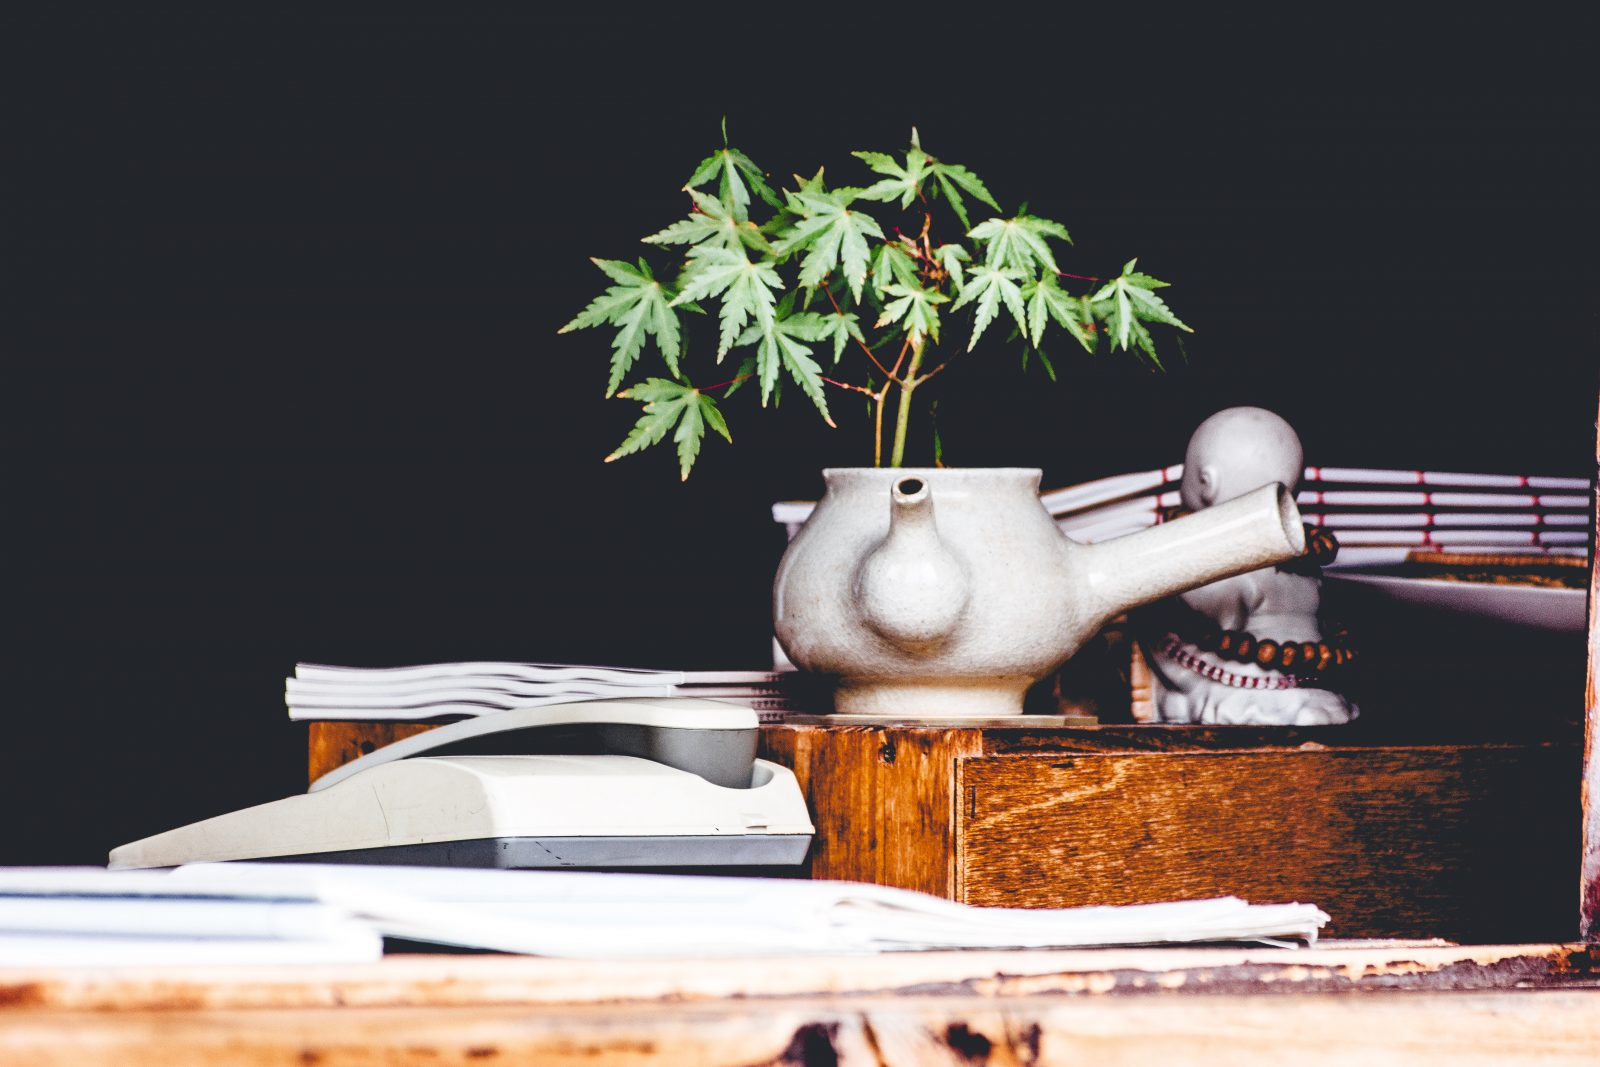 Stirring the Pot: The Current Status of Marijuana Legalization in the United States